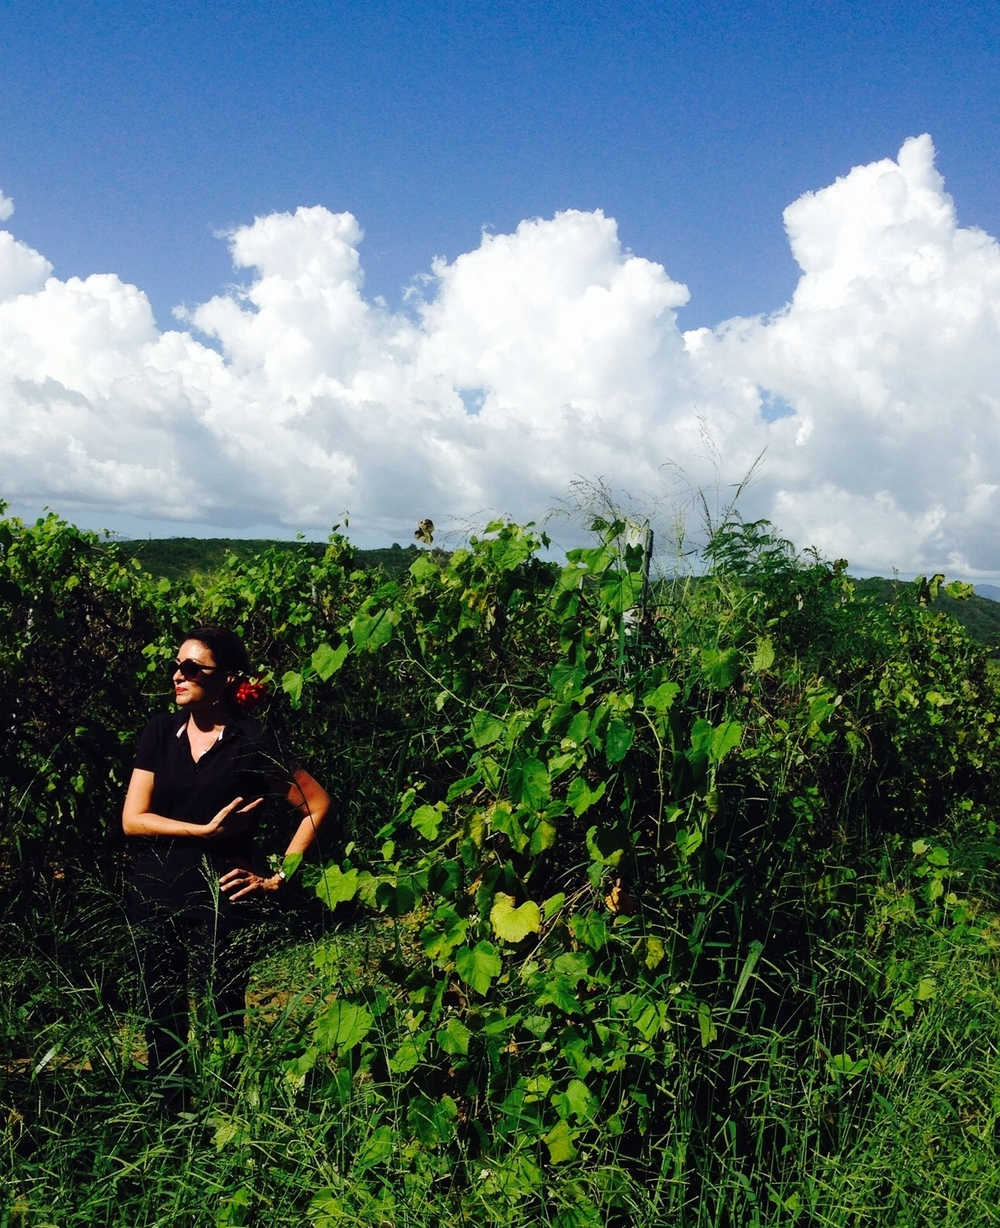 Our lovely tour guide in the vineyard.